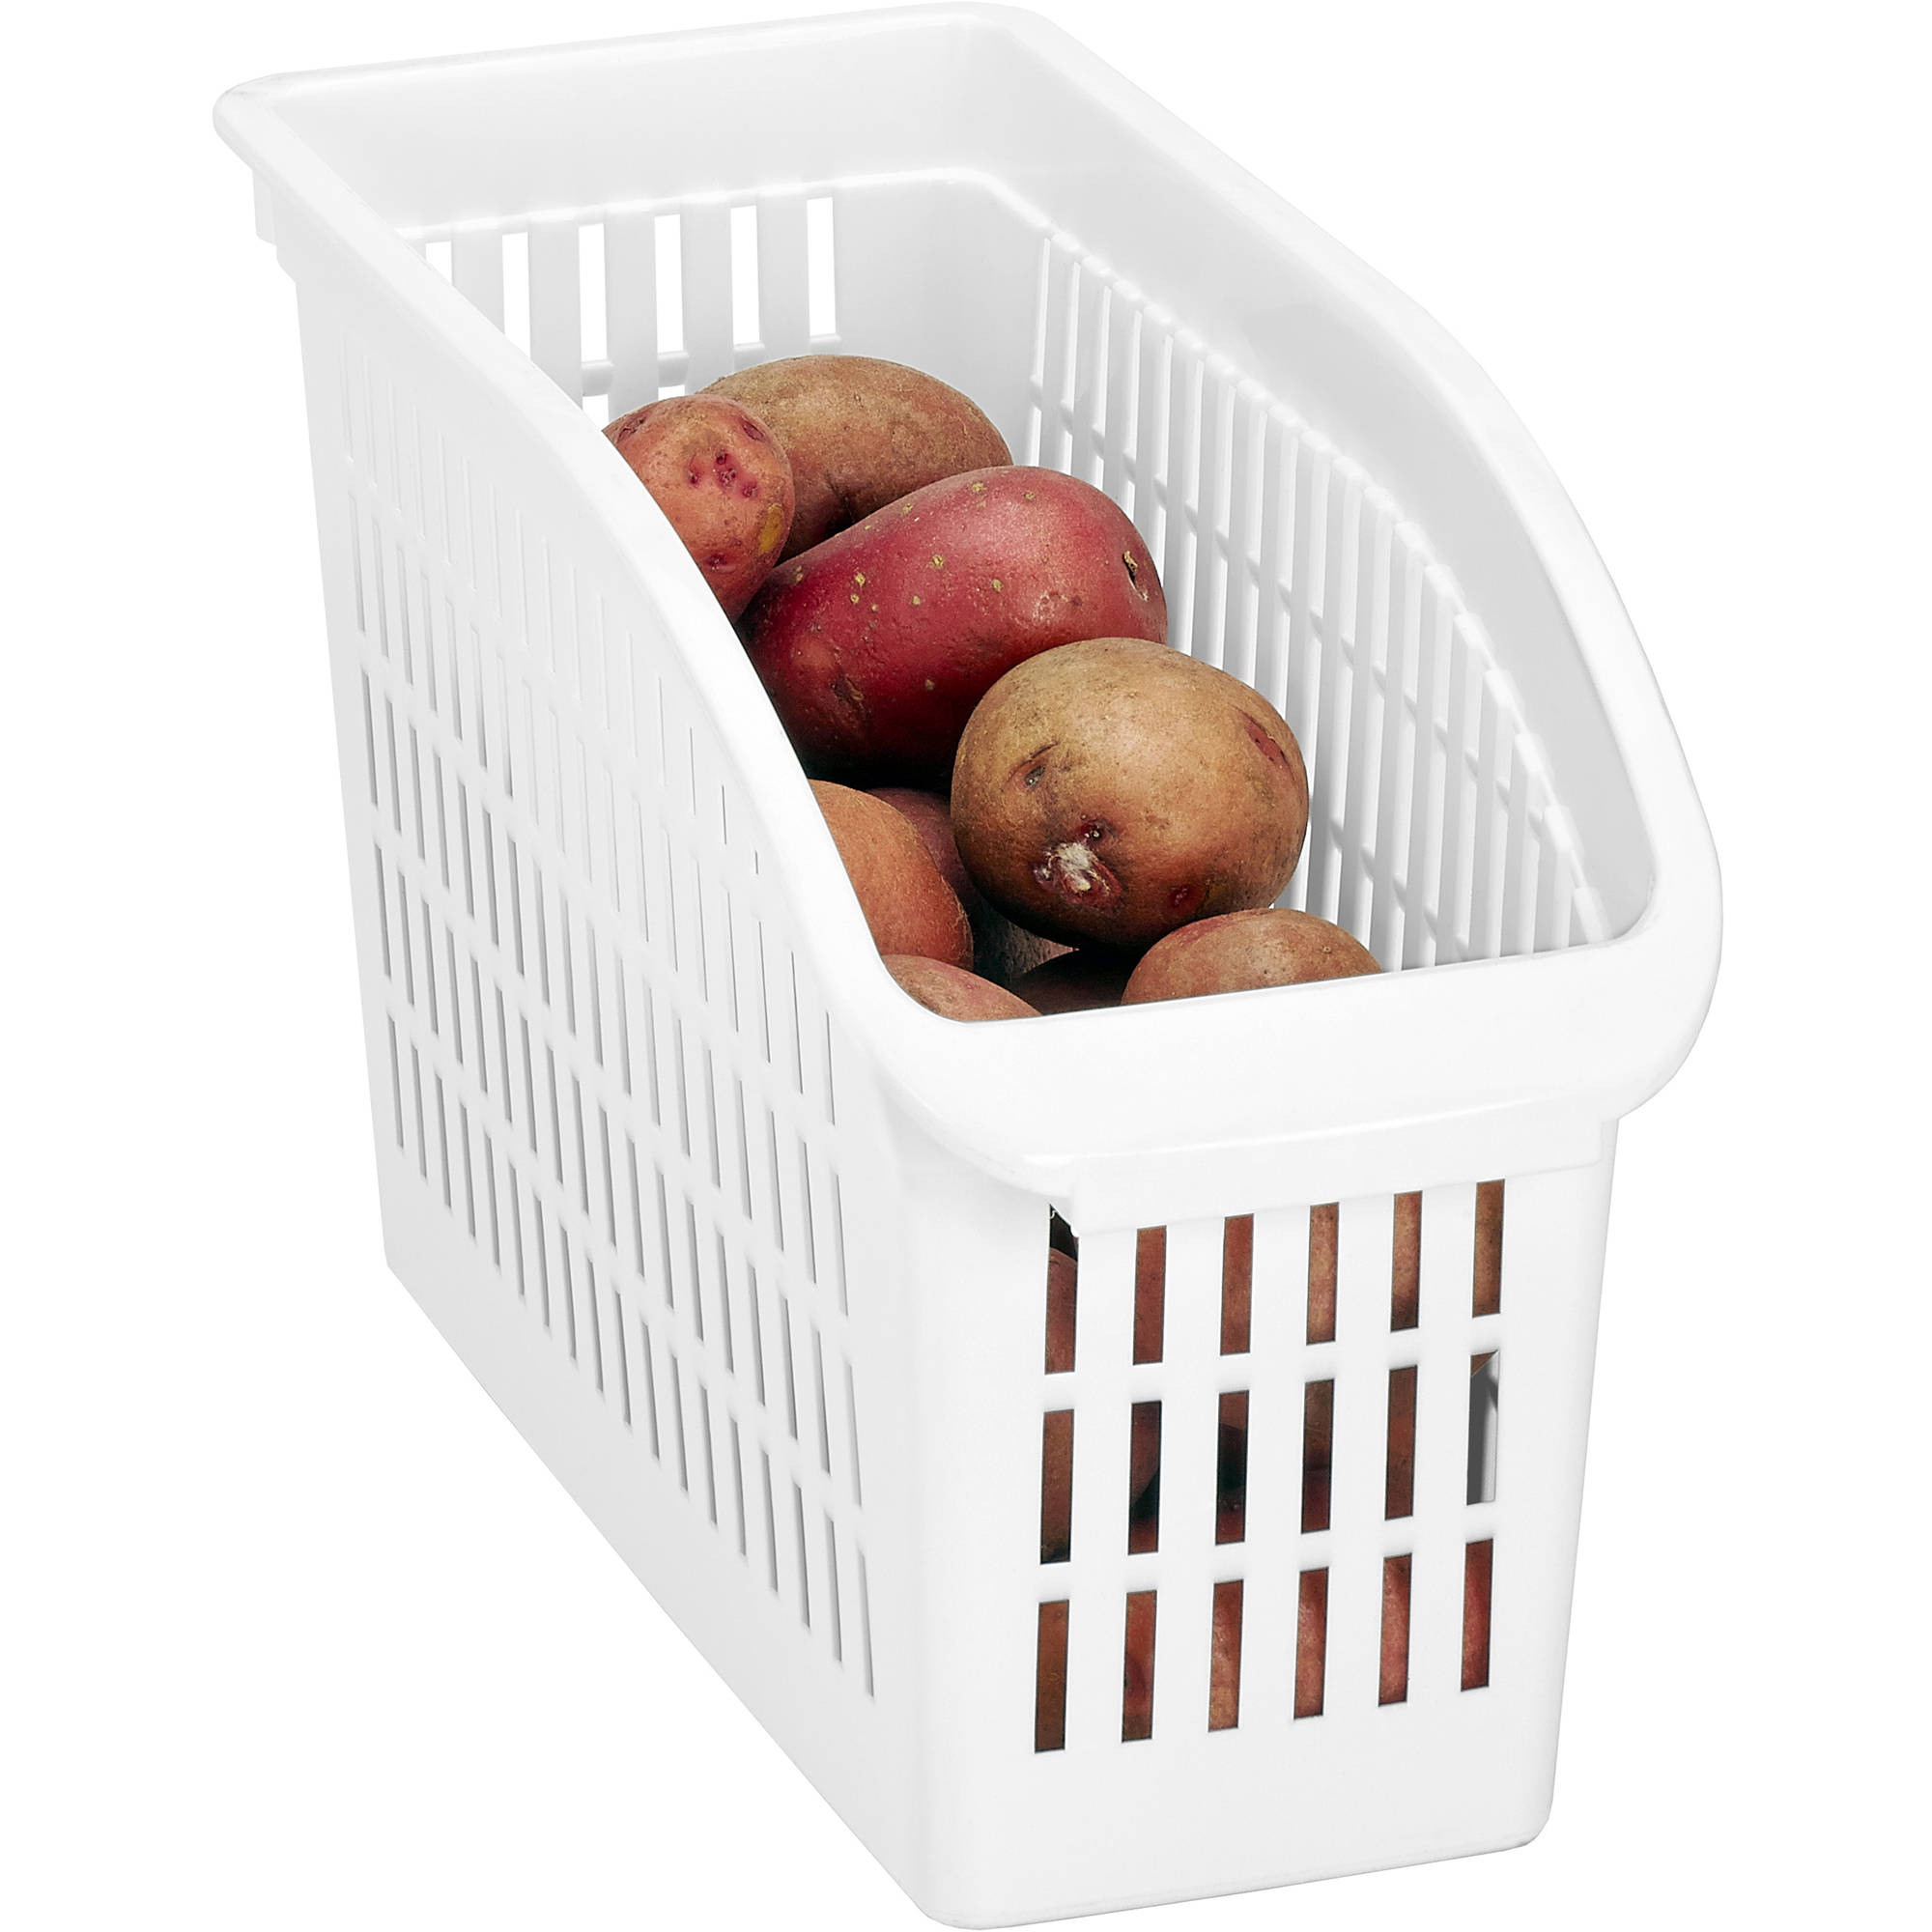 Kitchen Details Easy Pull Pantry Organizer Basket, Slim